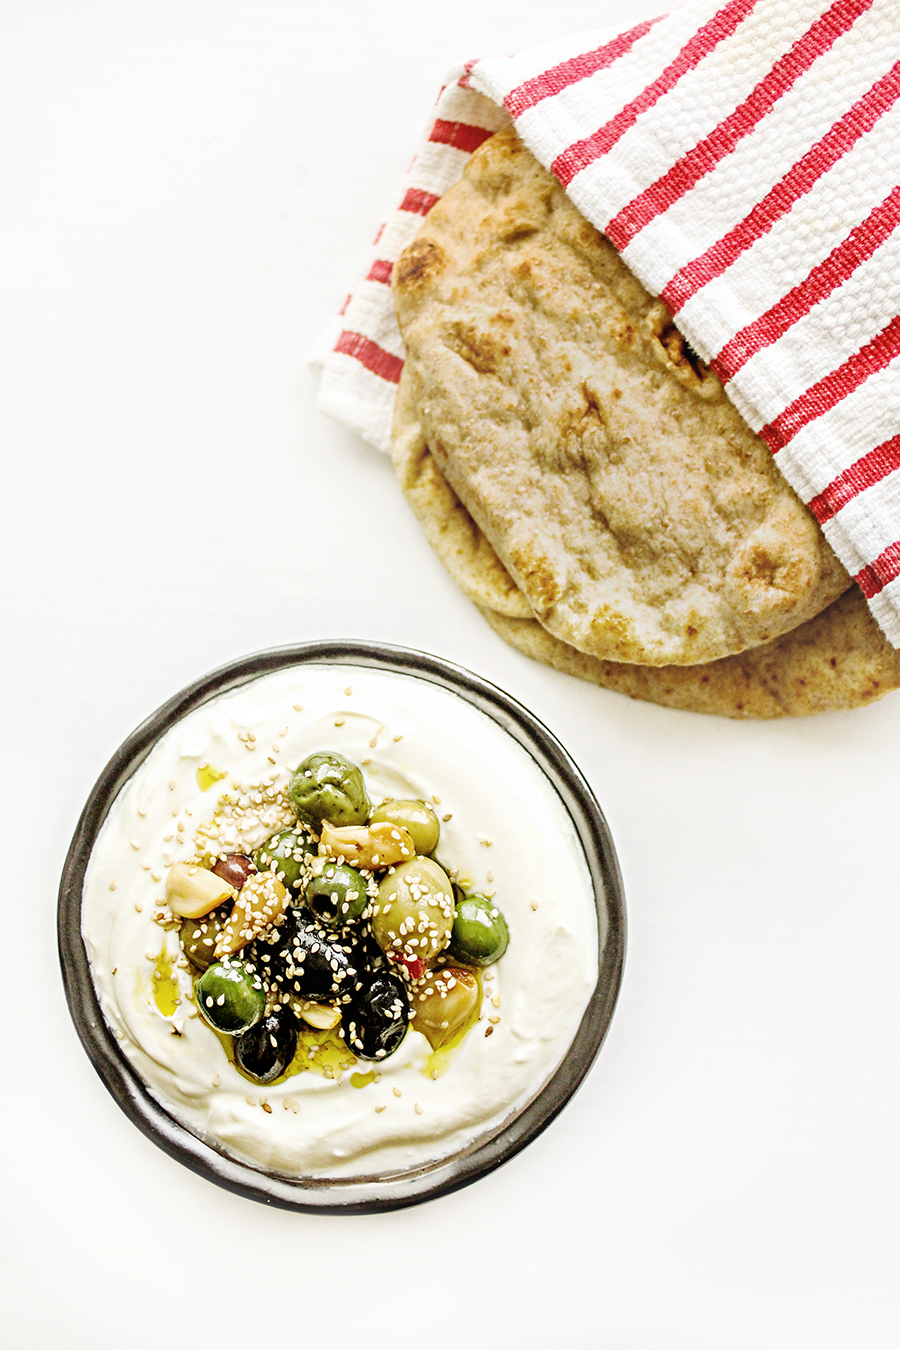 Organic Valley Grassmilk Yogurt Dip with Warm Mixed Olives, Sesame Seeds, and Roasted Garlic | Photograph  © Cheryl Sternman Rule